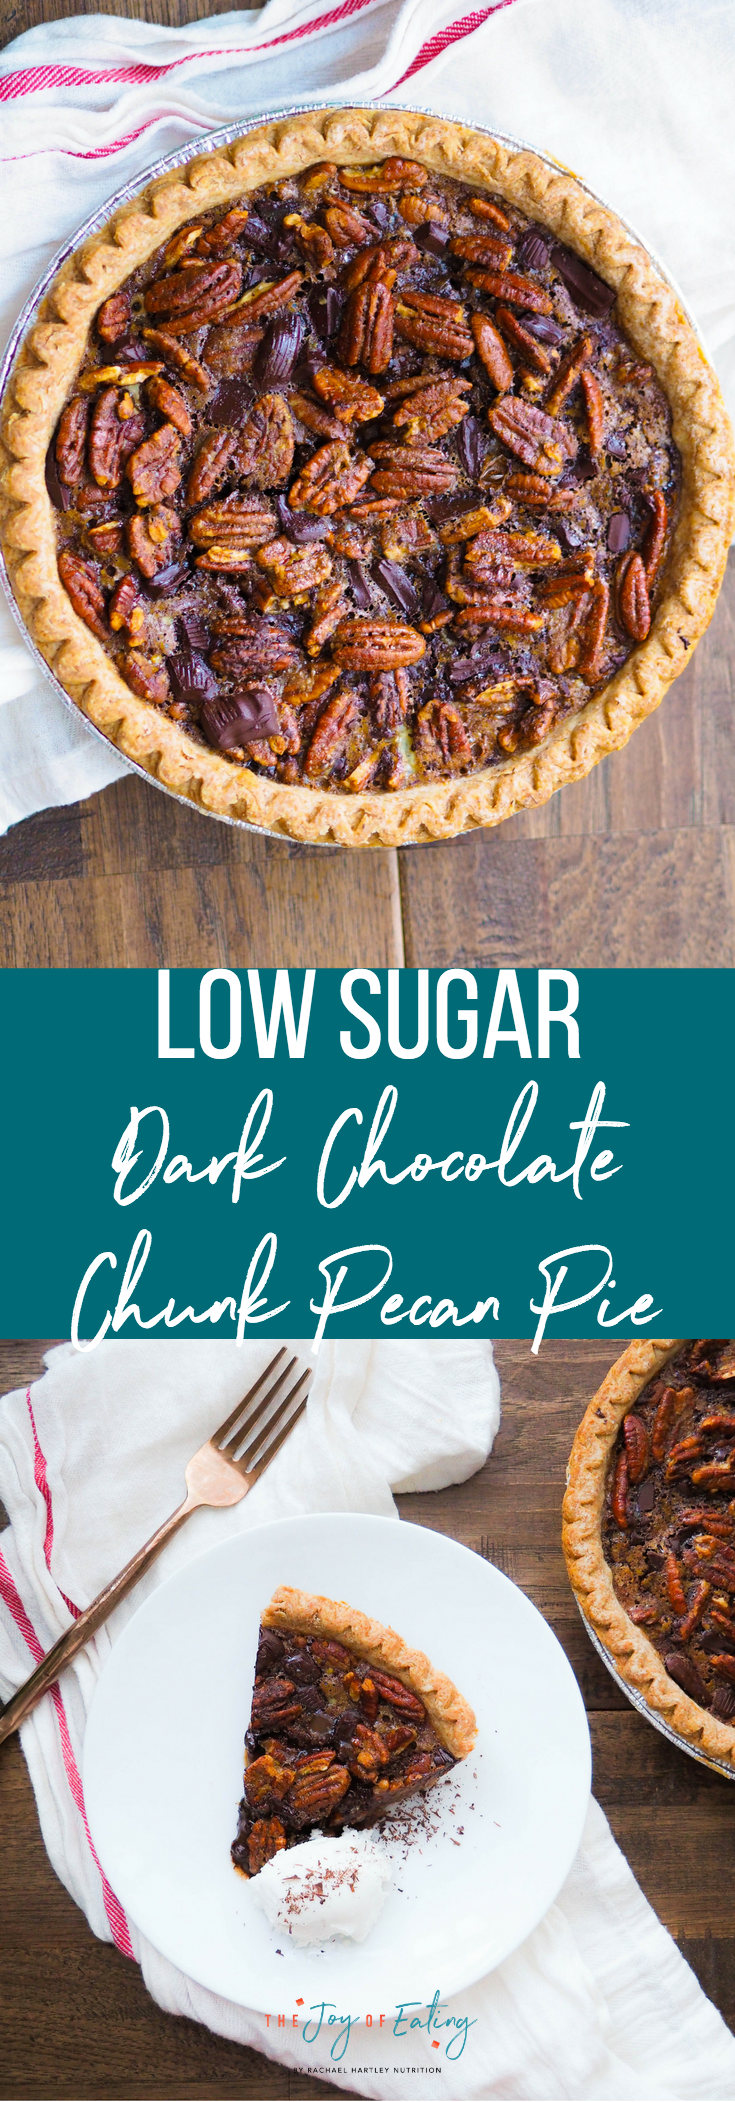 low-sugar-dark-chocolate-chunk-pecan-pie.png